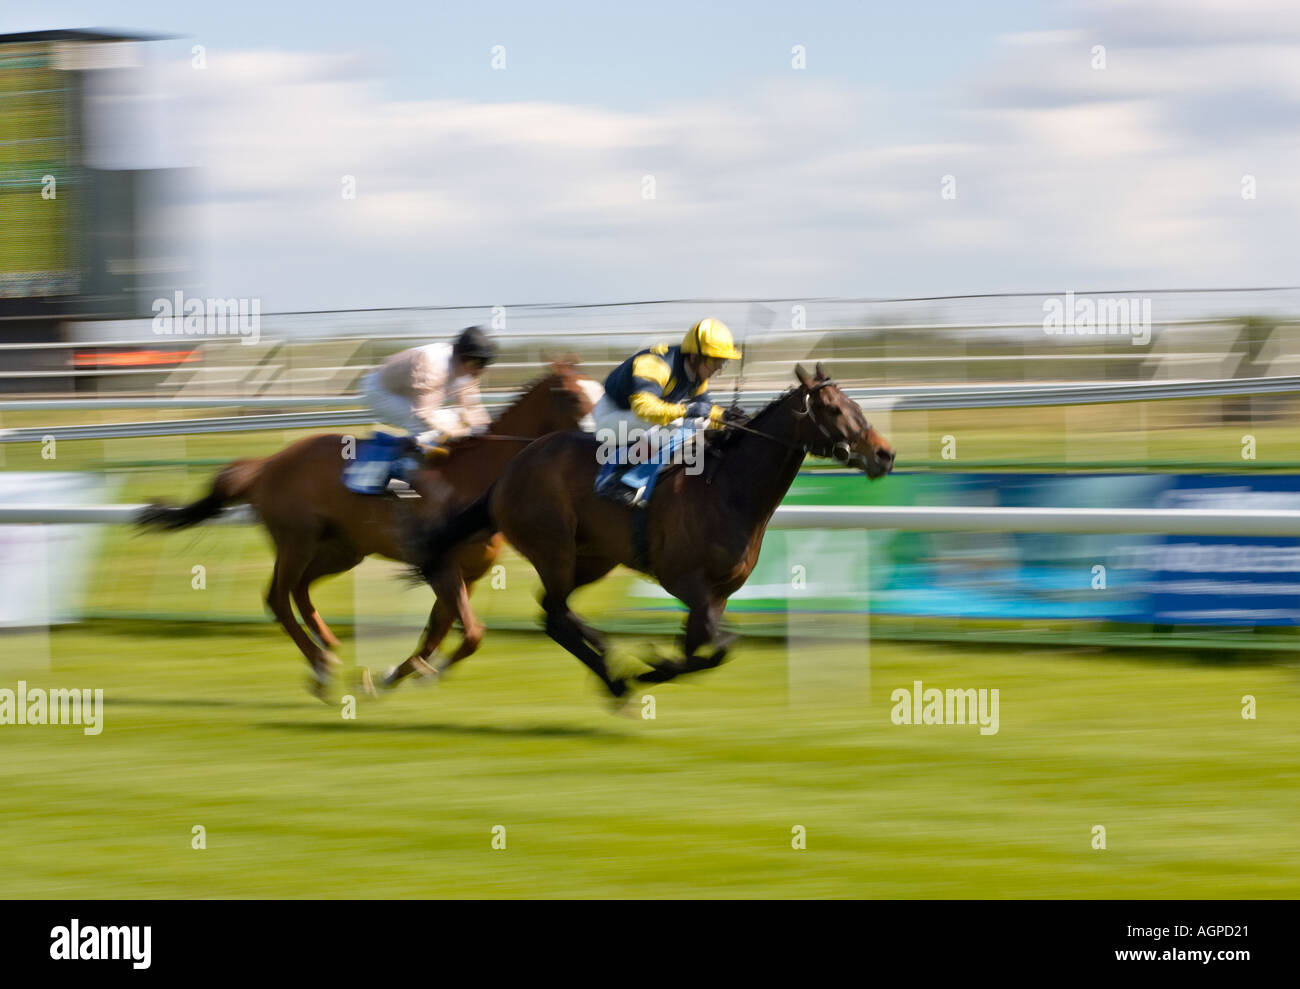 Horse racing in a race for the finishing post - Stock Image